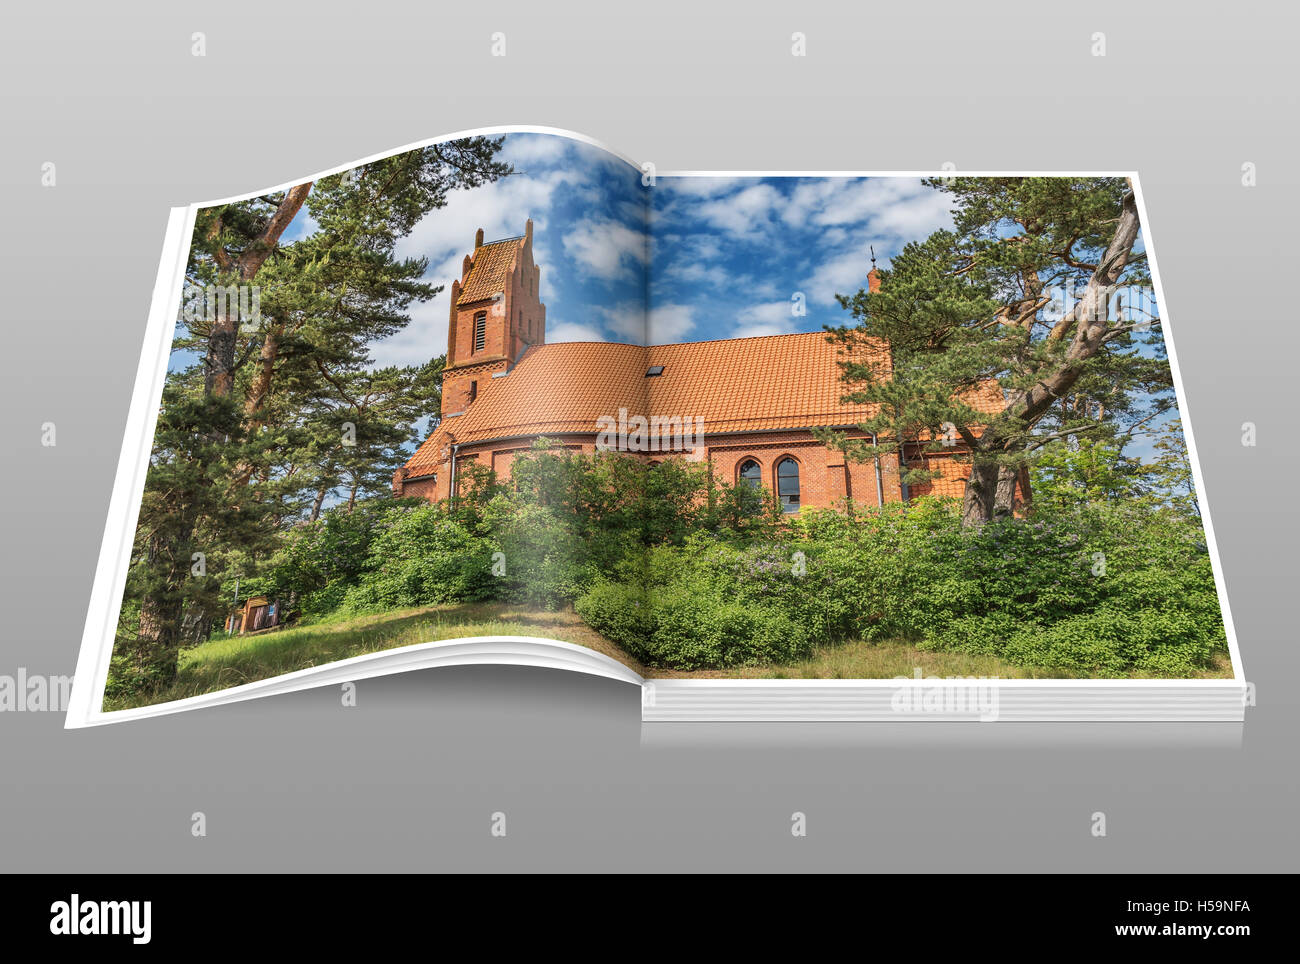 The Evangelical Church was built in Gothic style in 1888, Nidden, Nida, Neringa, Curonian spit, Lithuania, Baltic - Stock Image